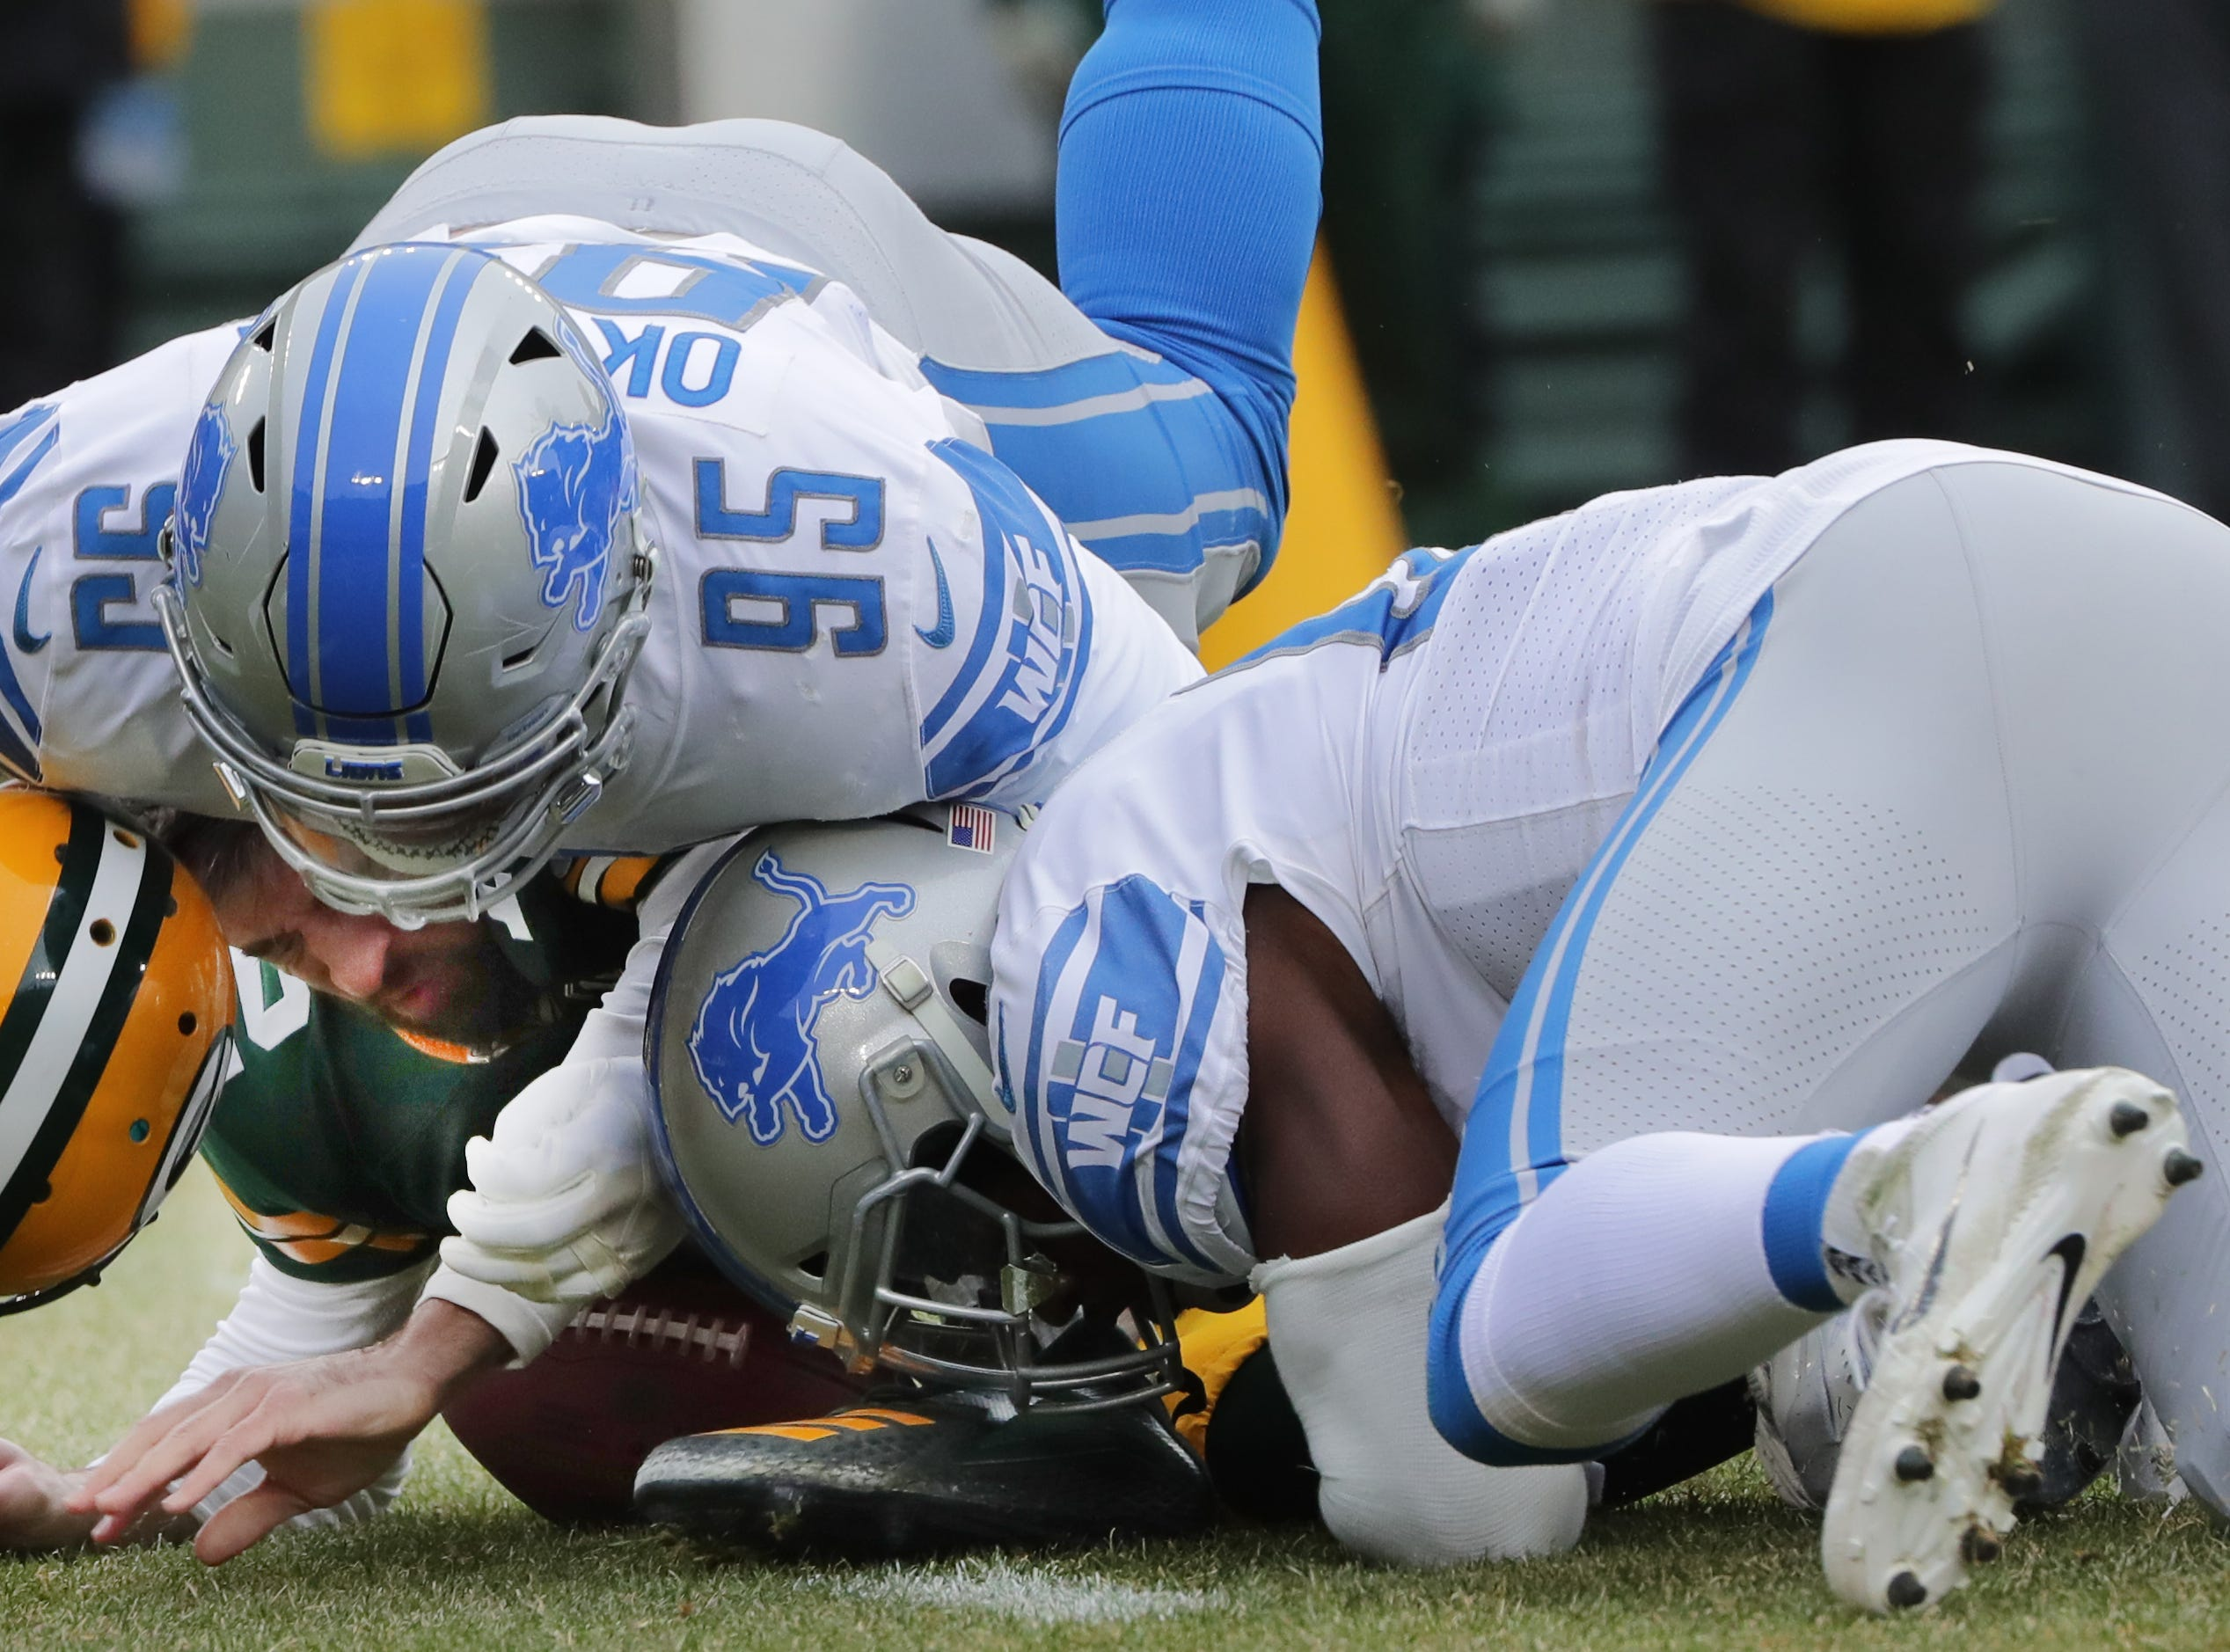 Green Bay Packers quarterback Aaron Rodgers (12) is sacked by Detroit Lions defensive end Romeo Okwara (95) during the first quarter of their game Sunday, December 30, 2018 at Lambeau Field in Green Bay, Wis.  MARK HOFFMAN/MILWAUKEE JOURNAL SENTINEL